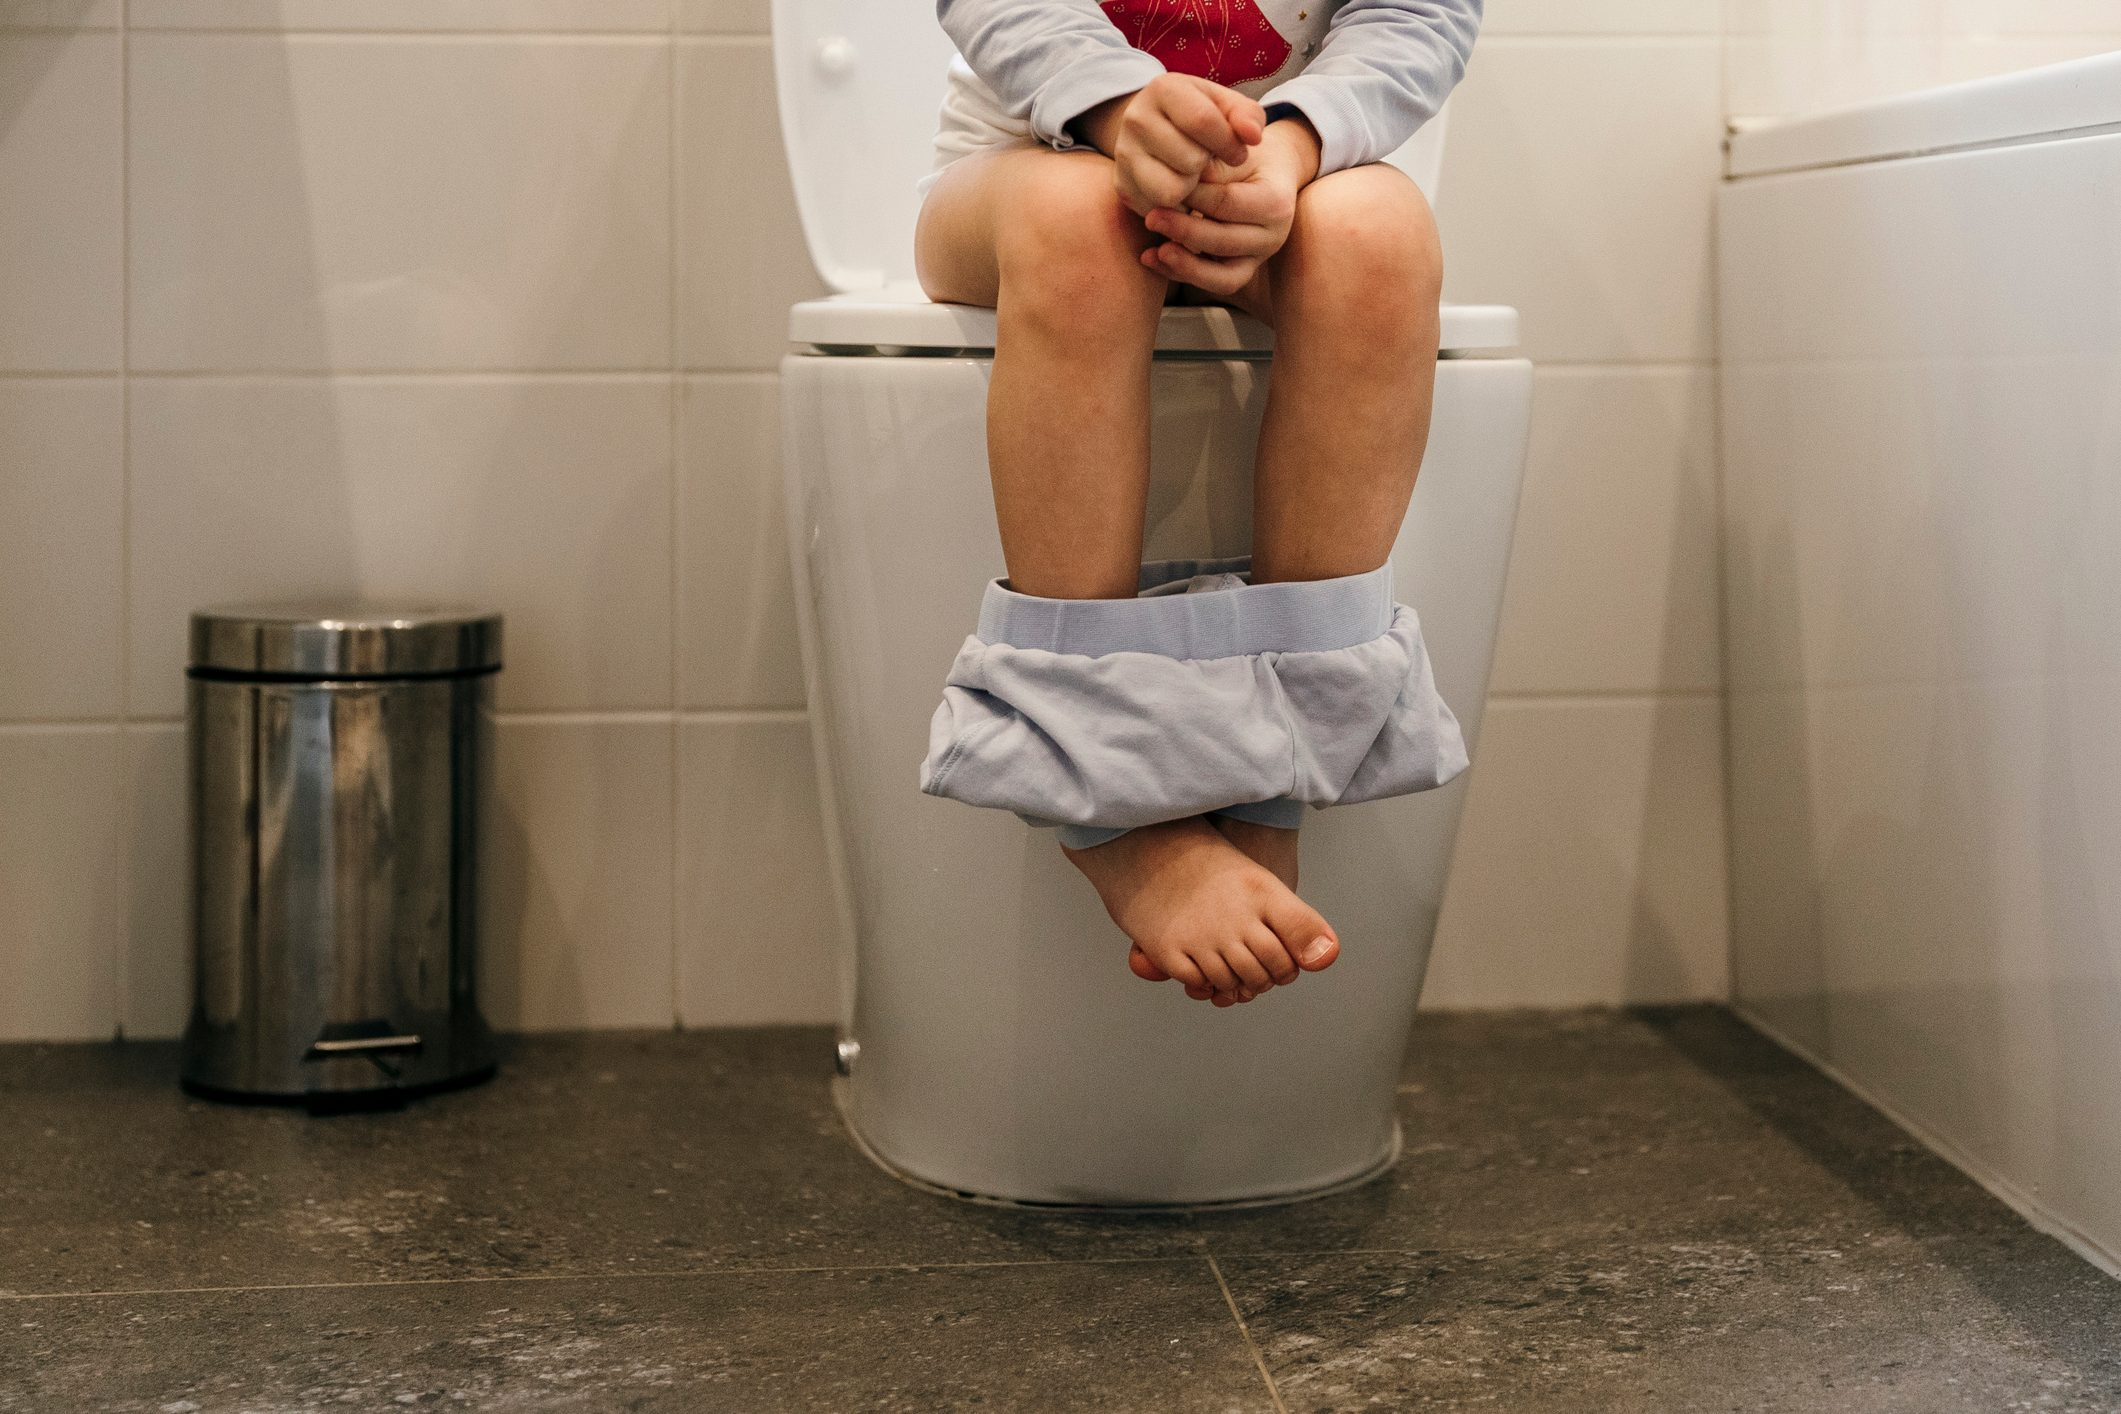 young child Using The Toilet